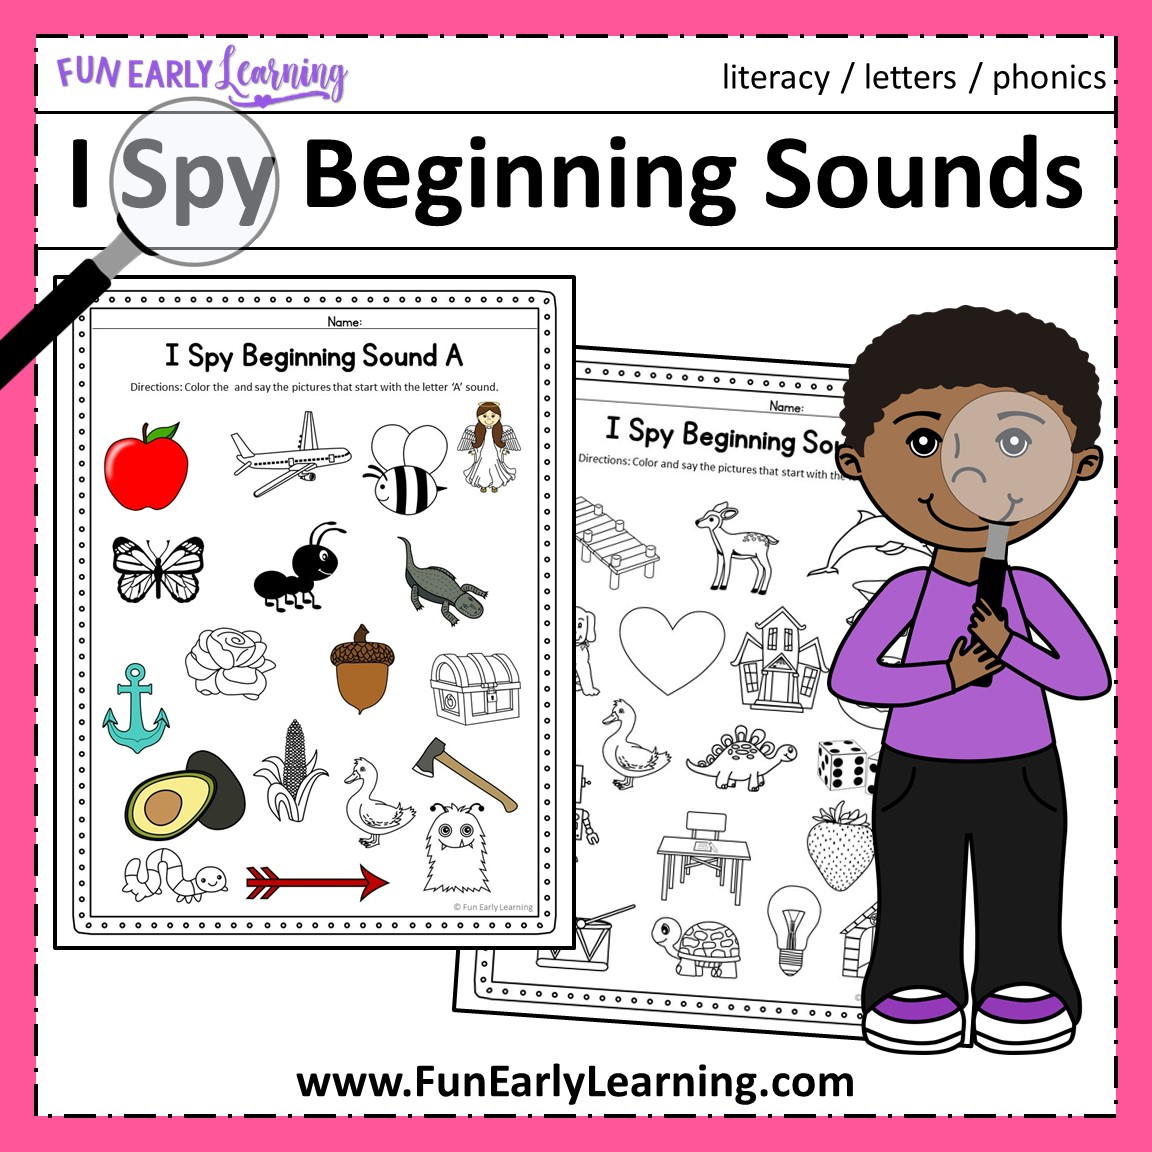 I Spy Beginning Sounds Activity